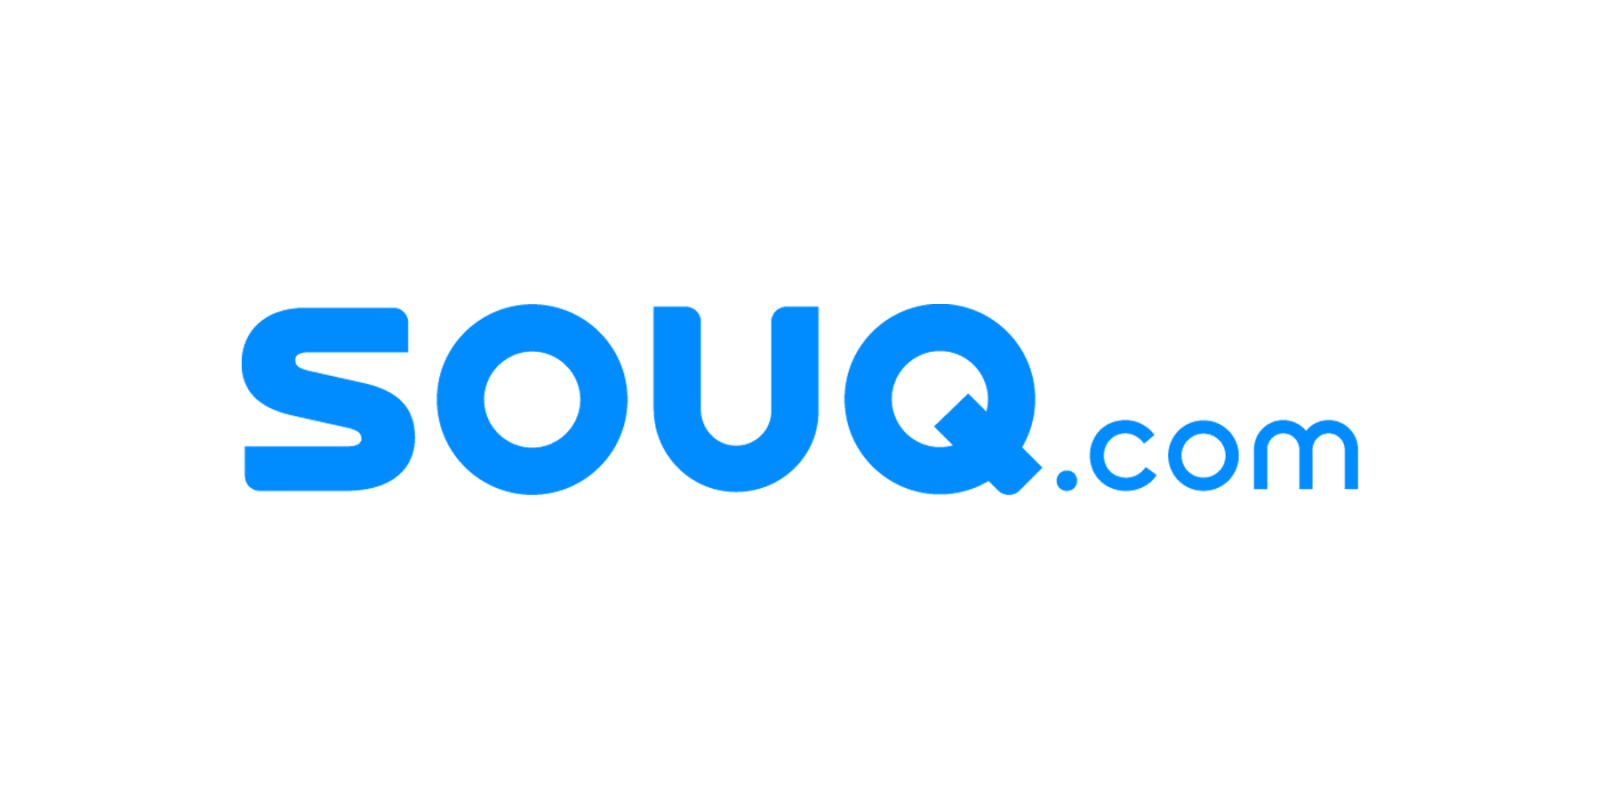 Amazon Reportedly Walks Away From $1 Billion Acquisition of Souq com